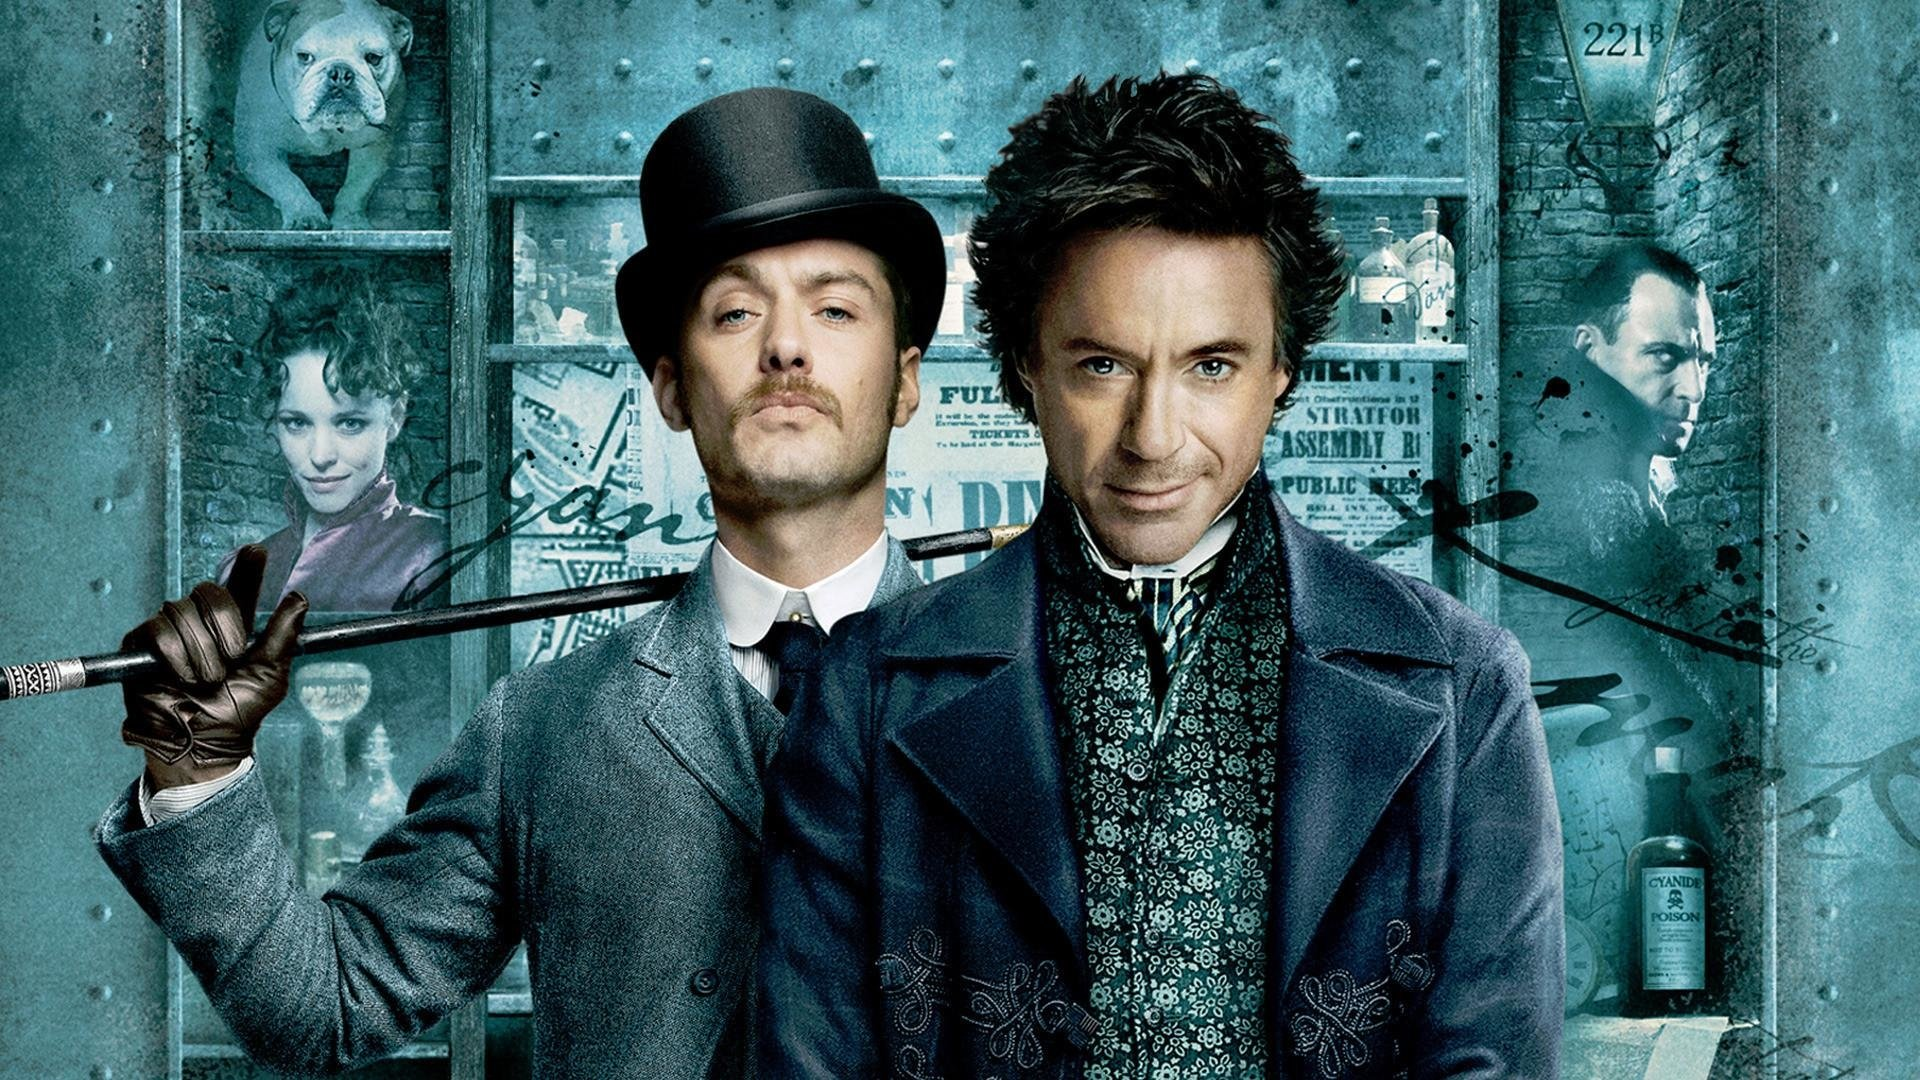 Sherlock Holmes HD Wallpaper | Background Image | 1920x1080 | ID:491597 -  Wallpaper Abyss